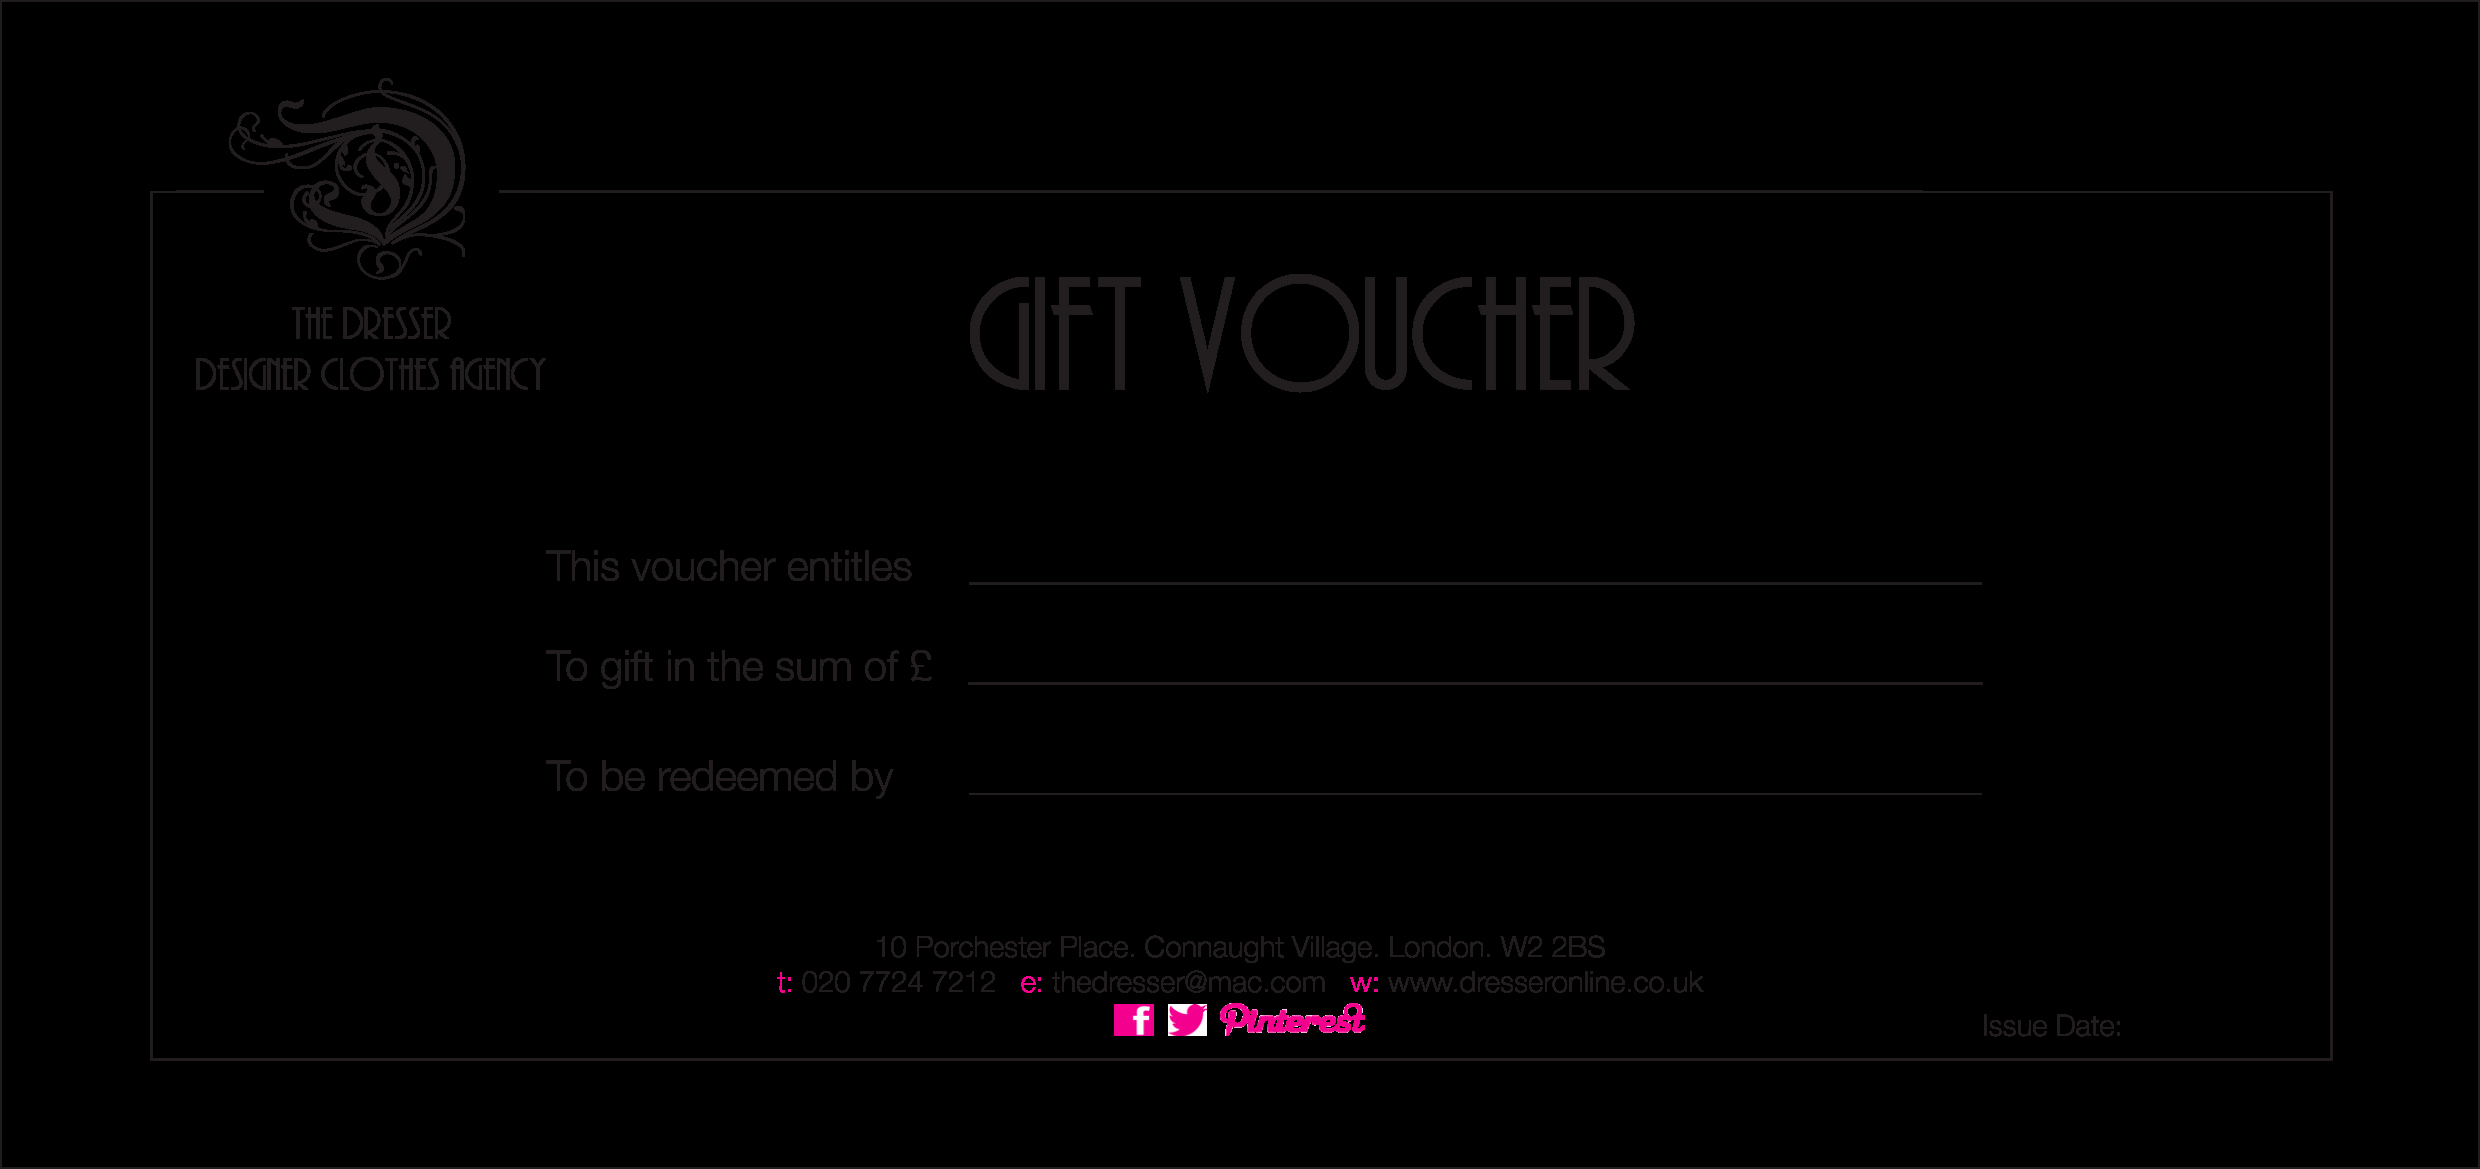 Massage Gift Certificate Template Free Download Inspirational Printable Gift Certificate Templates Vouchers